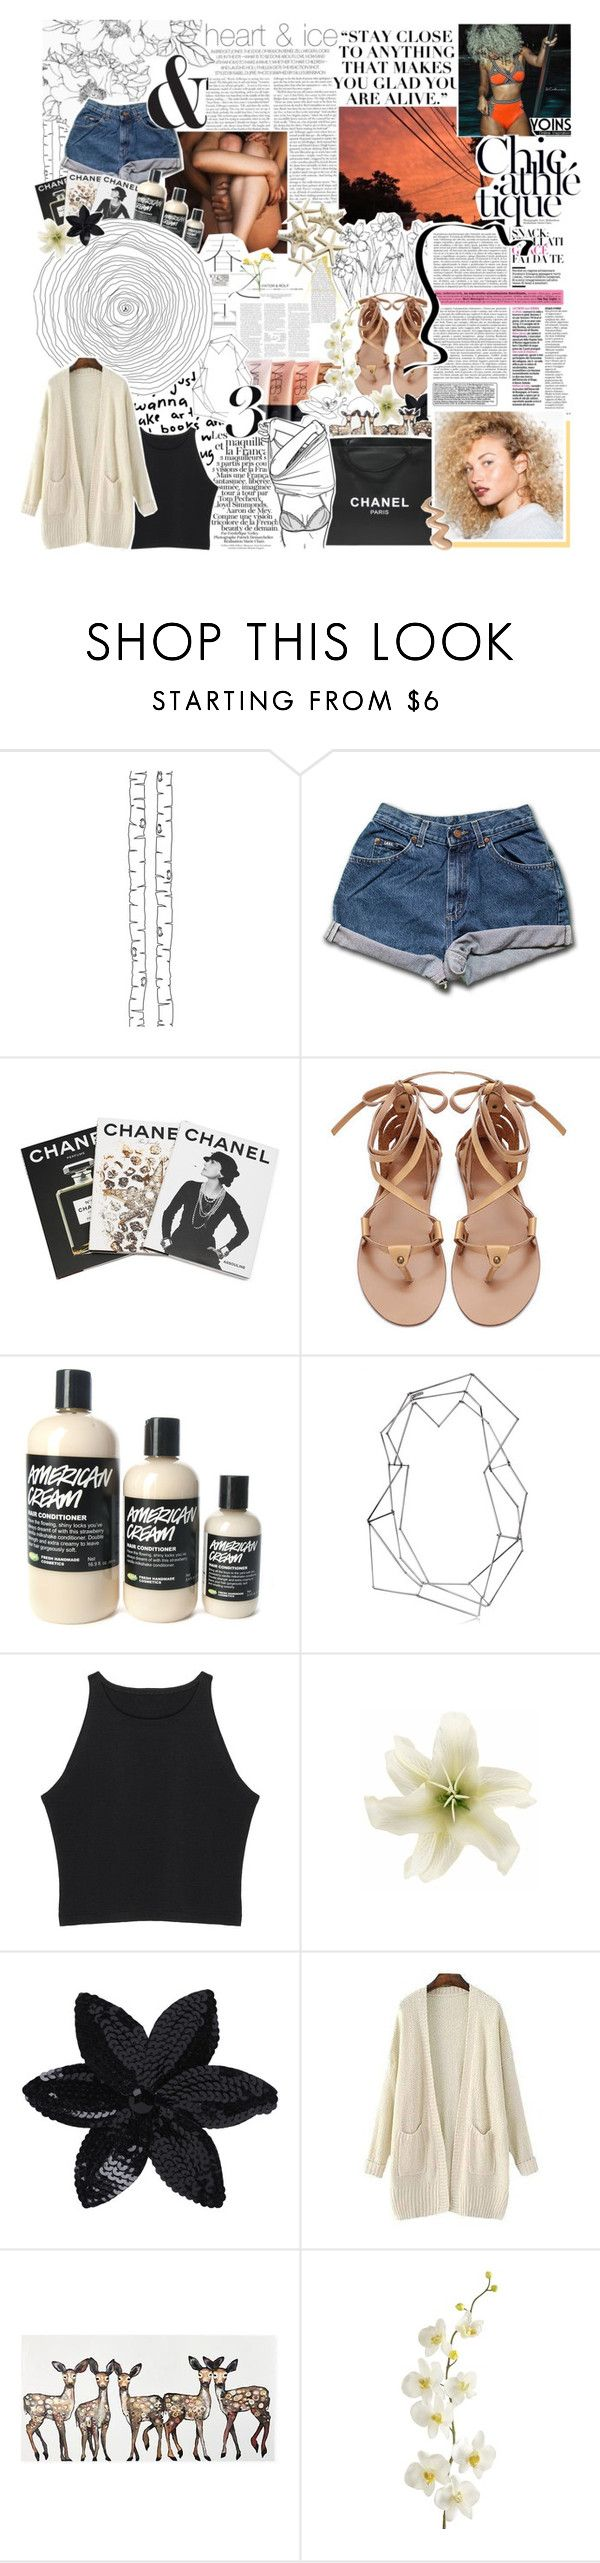 """If we just put each other first ; yoins"" by oreokk22 ❤ liked on Polyvore featuring ferm LIVING, Assouline Publishing, BANCI GIOIELLI, Clips, ASOS, WALL, Chanel, Péro, Pier 1 Imports and yoins"